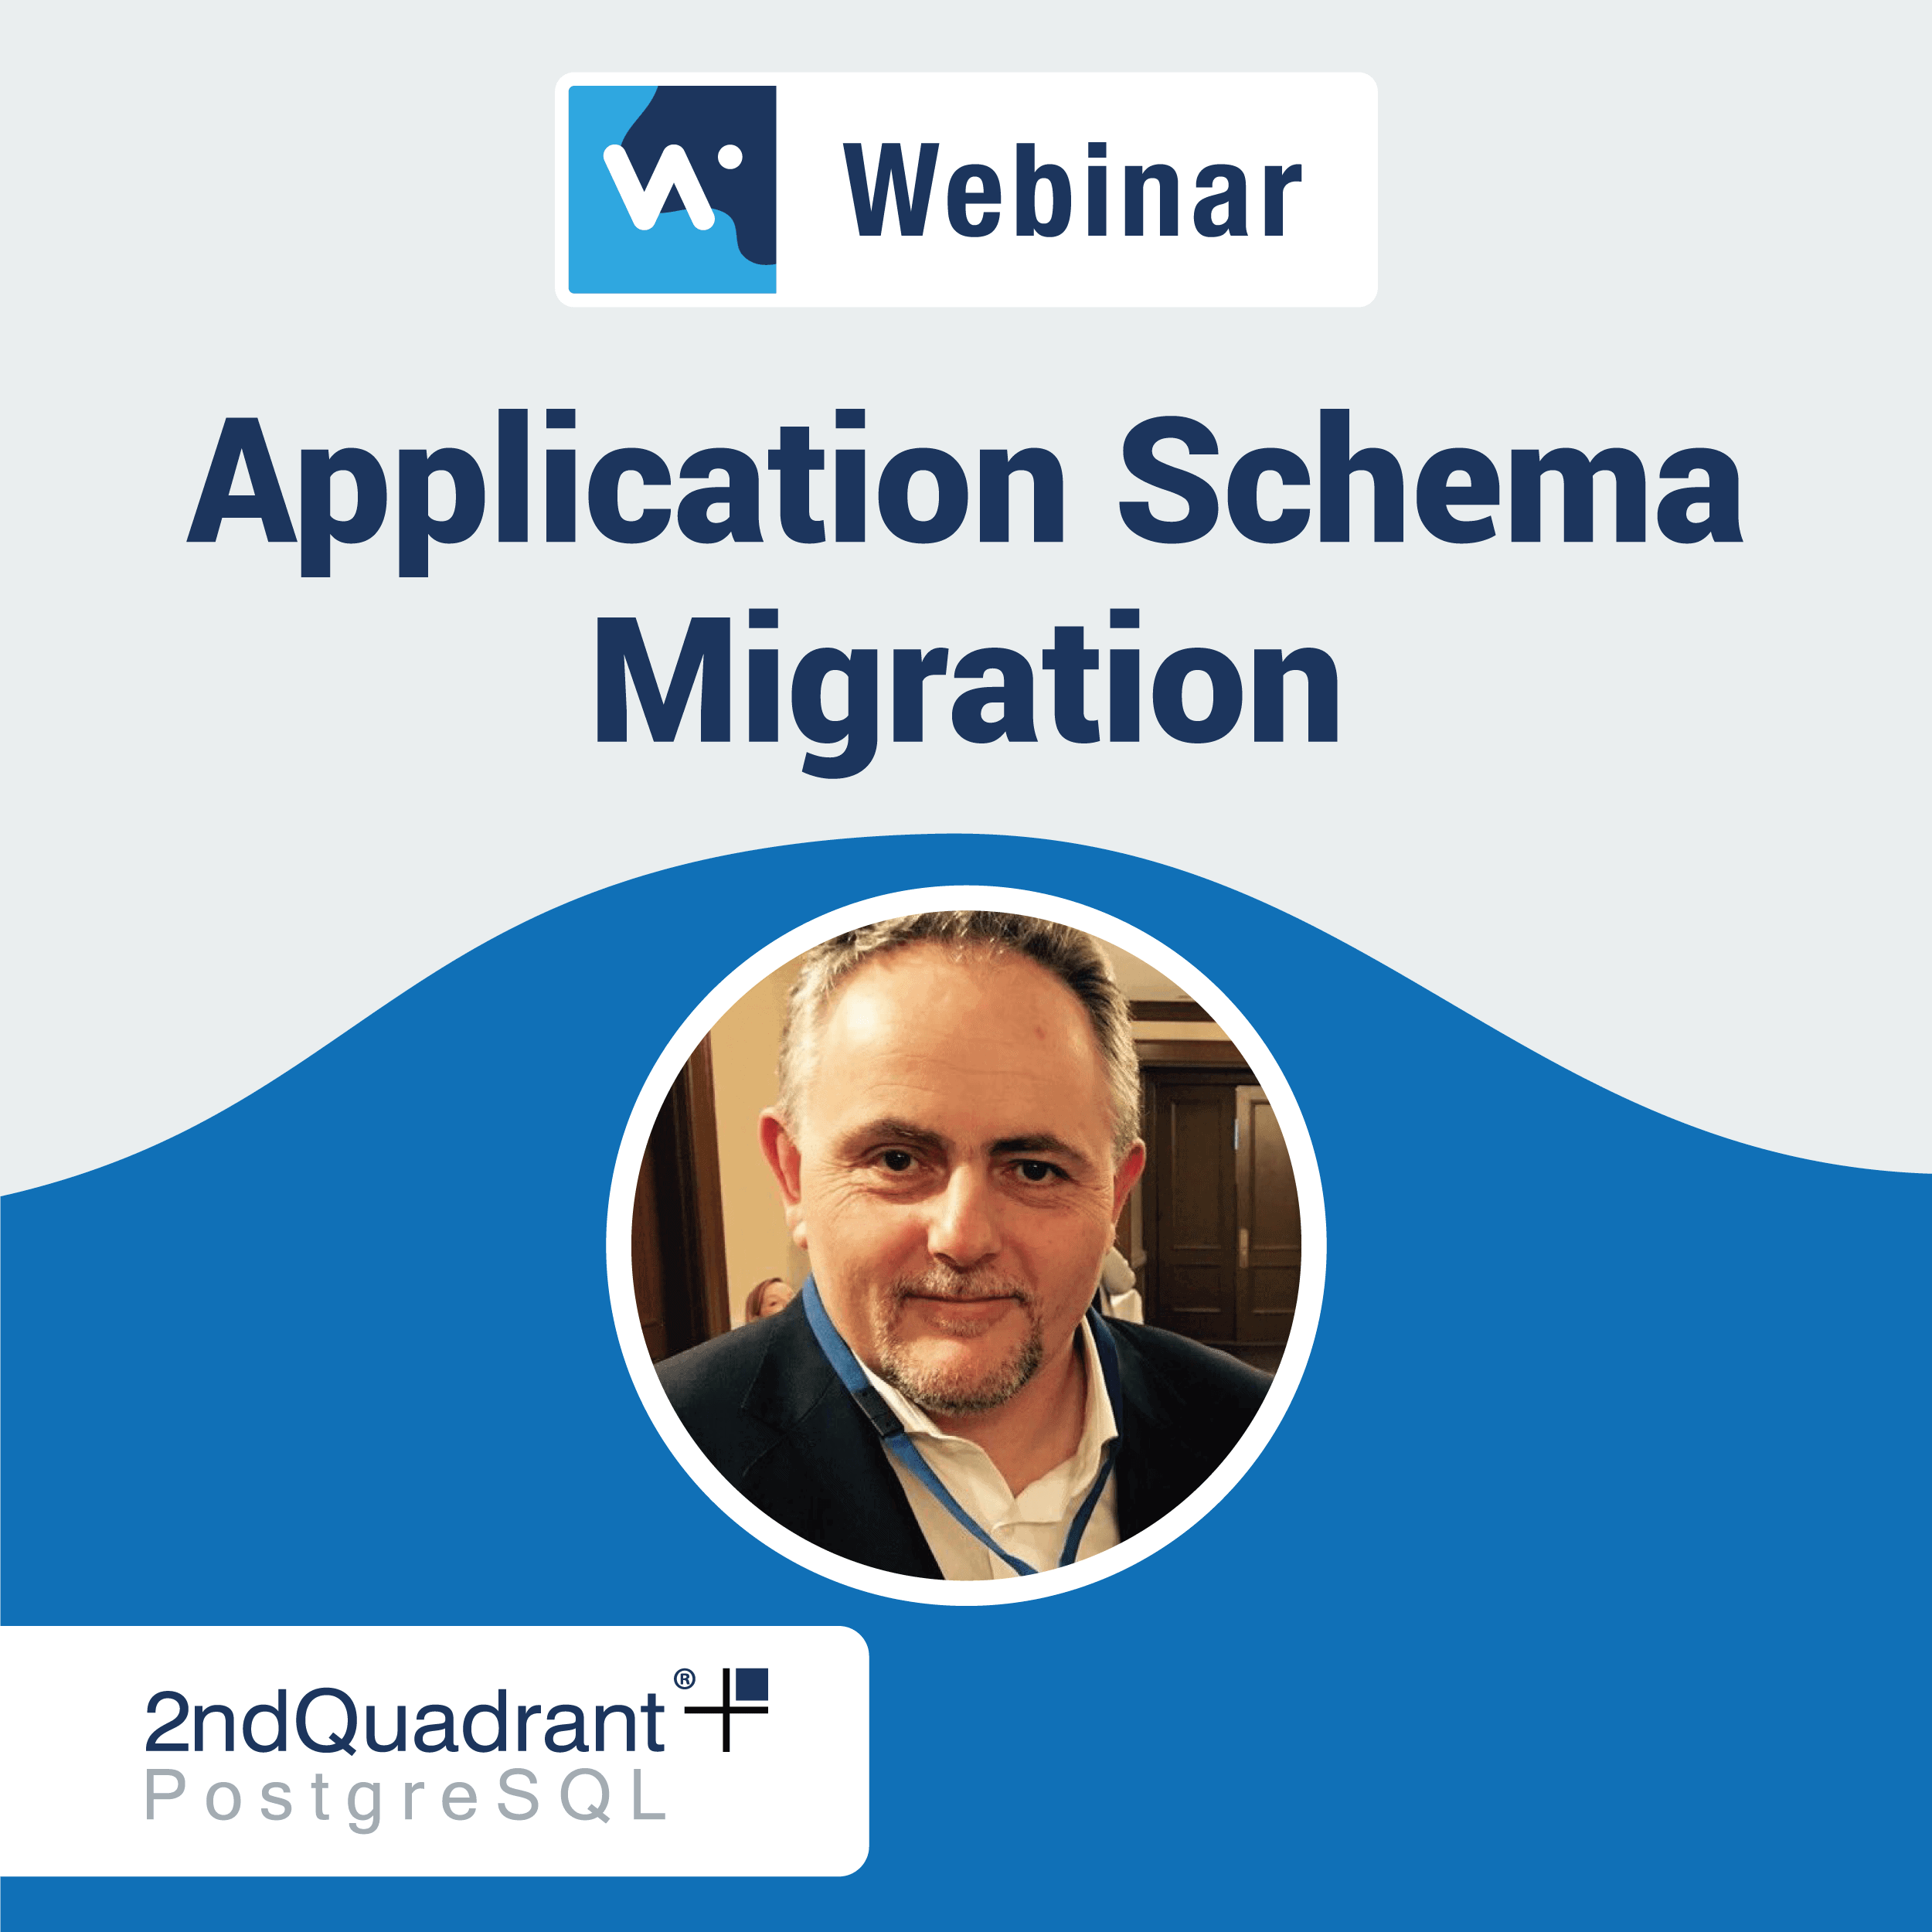 Application Schema Migration Webinar